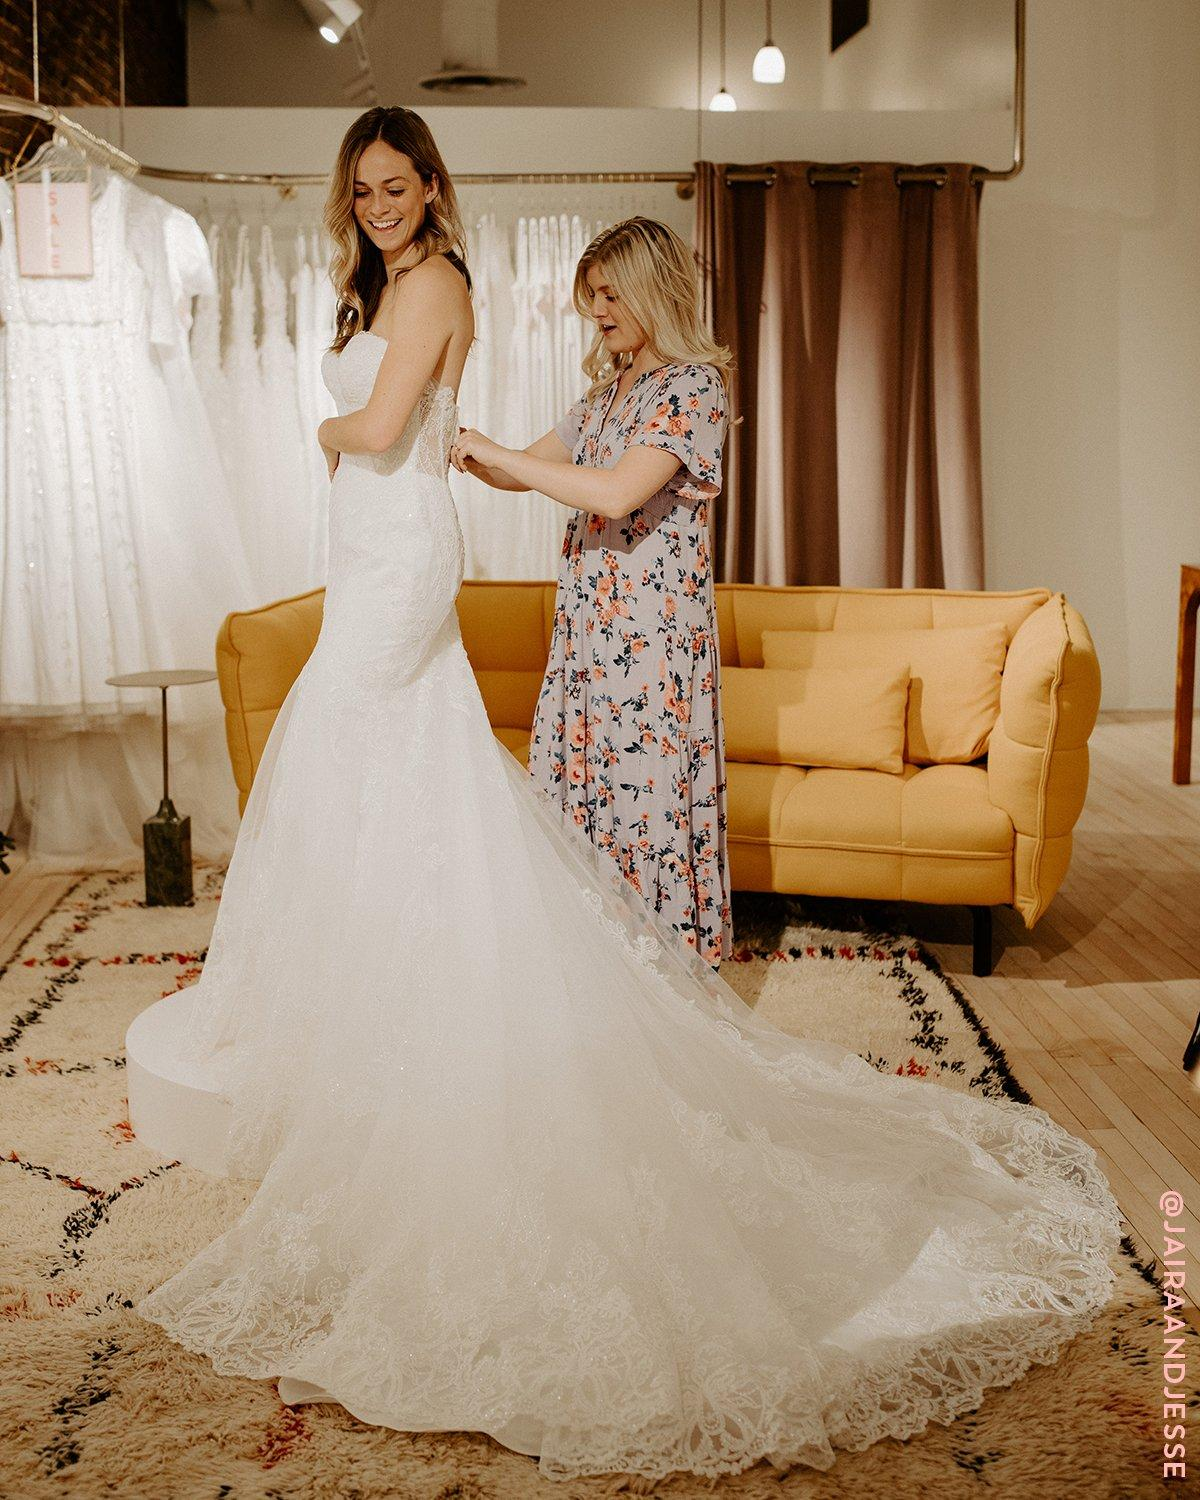 Vow'd is making a difference in bridal